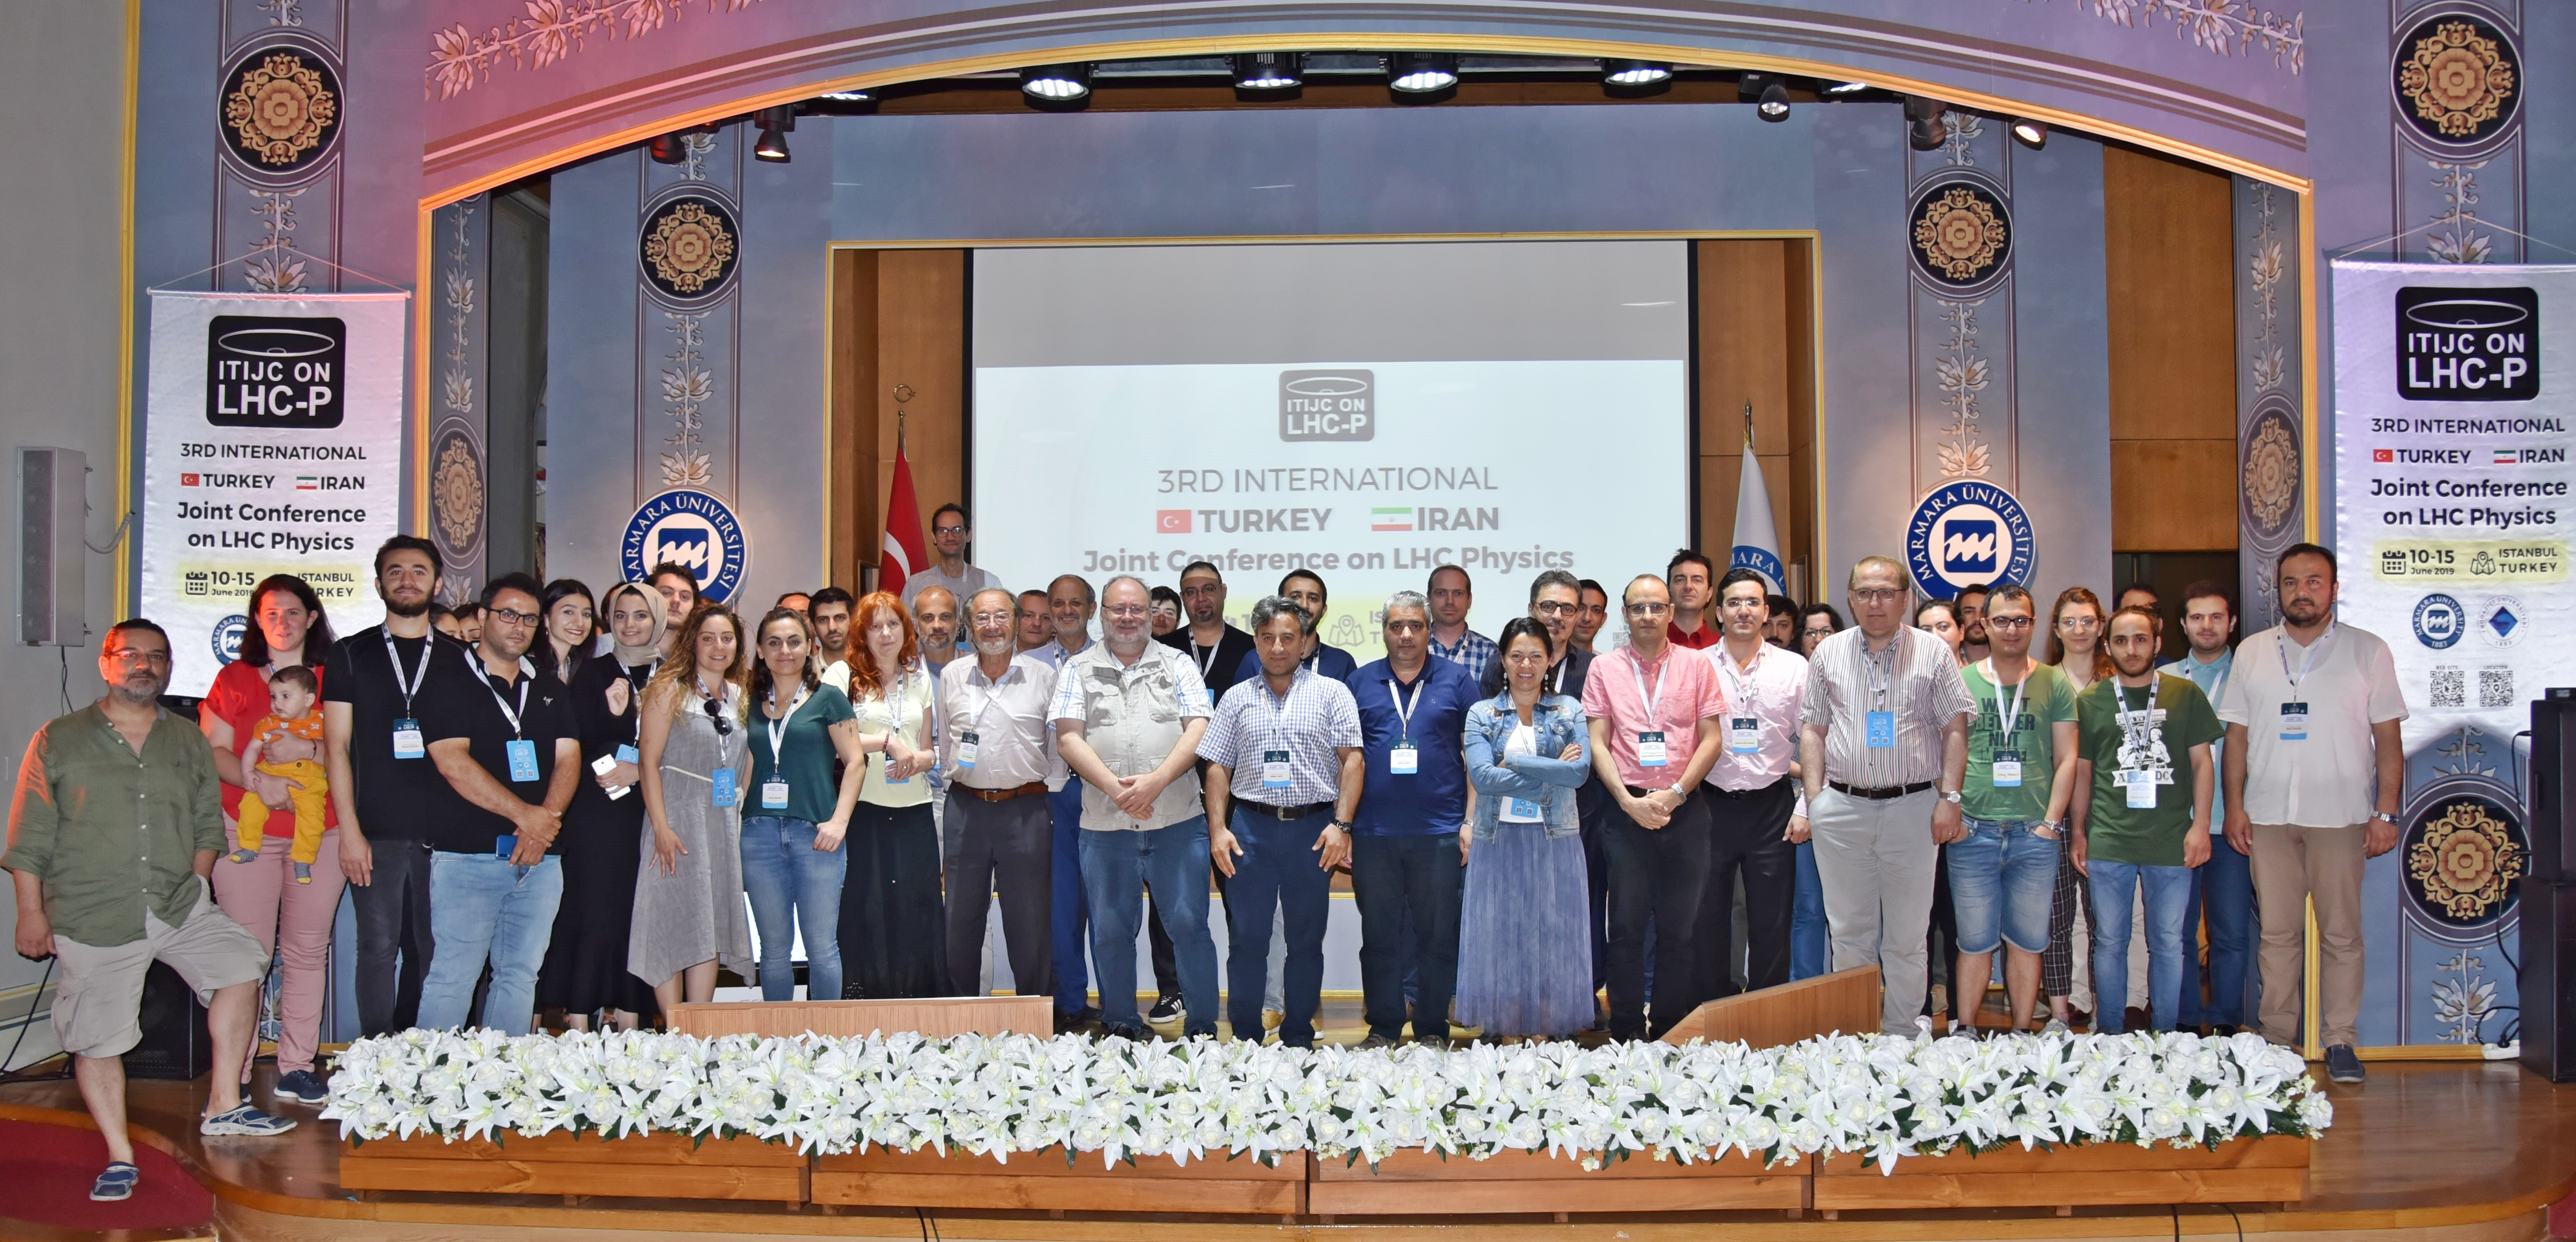 3rd International Turkey Iran Joint Conference on LHC Physics